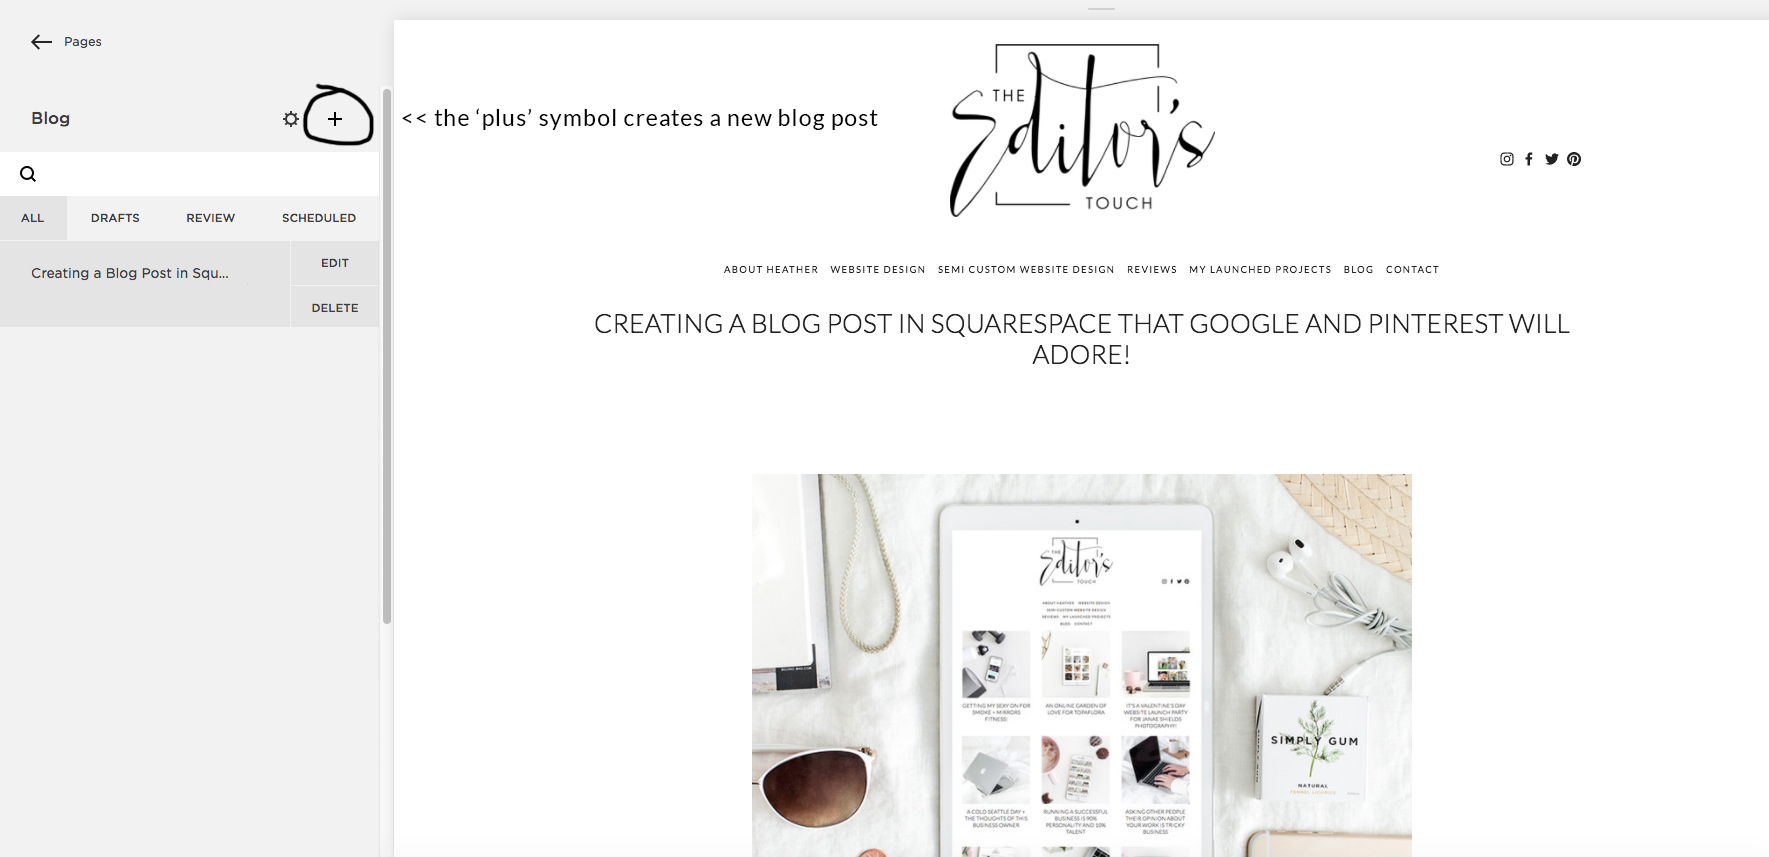 Creating a blog post using Squarespace | Blogging with Squarespace | The Editor's Touch